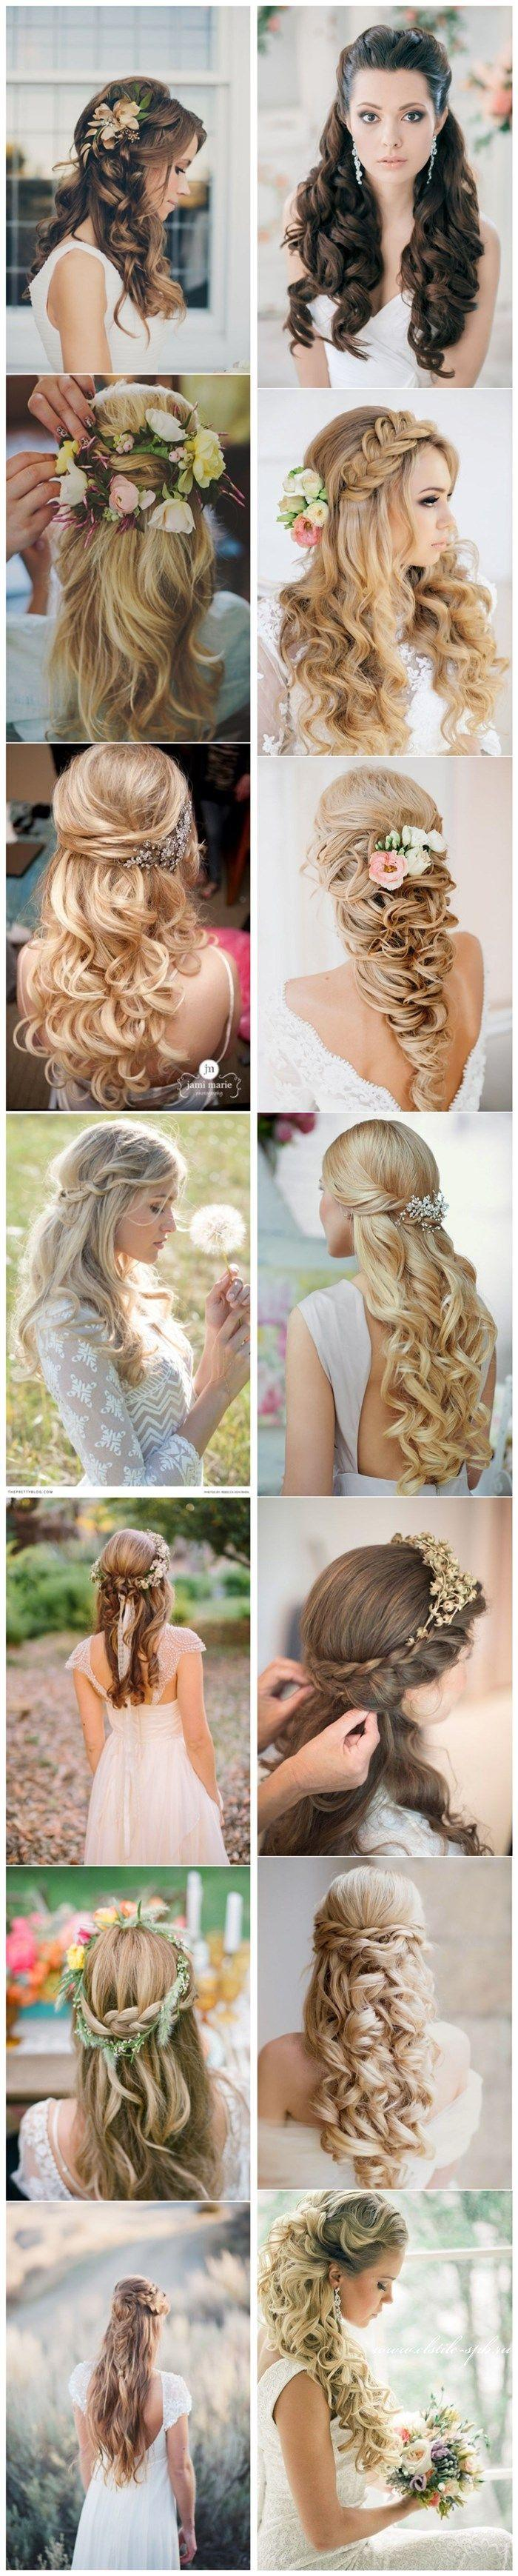 Wedding - 40 Stunning Half Up Half Down Wedding Hairstyles With Tutorial